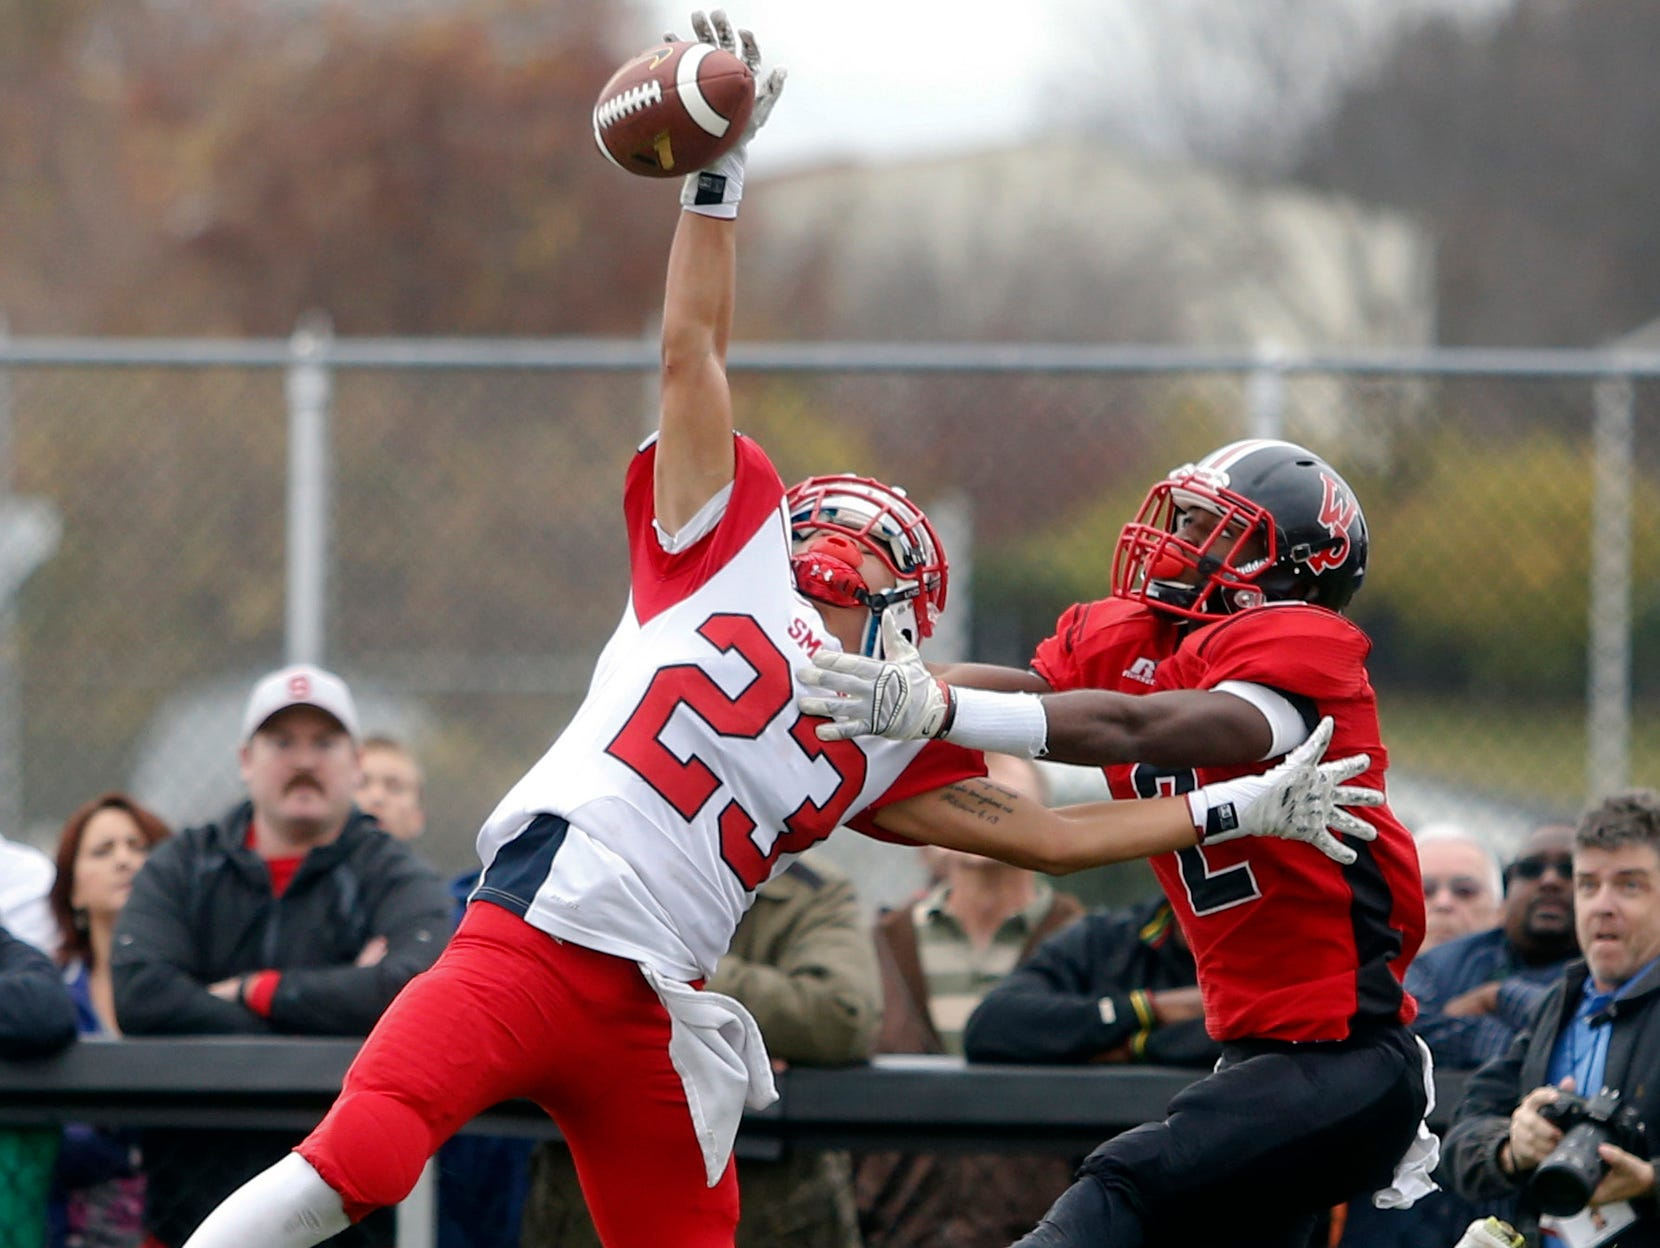 Smyrna defensive back Jeremy D'Aguiar breaks up a fourth down pass in the end zone intended for William Penn's Chi Chi Amachi in the first quarter of Smyrna's 30-13 win in a semifinal of the DIAA Division I state tournament at Bill Cole Stadium Saturday.